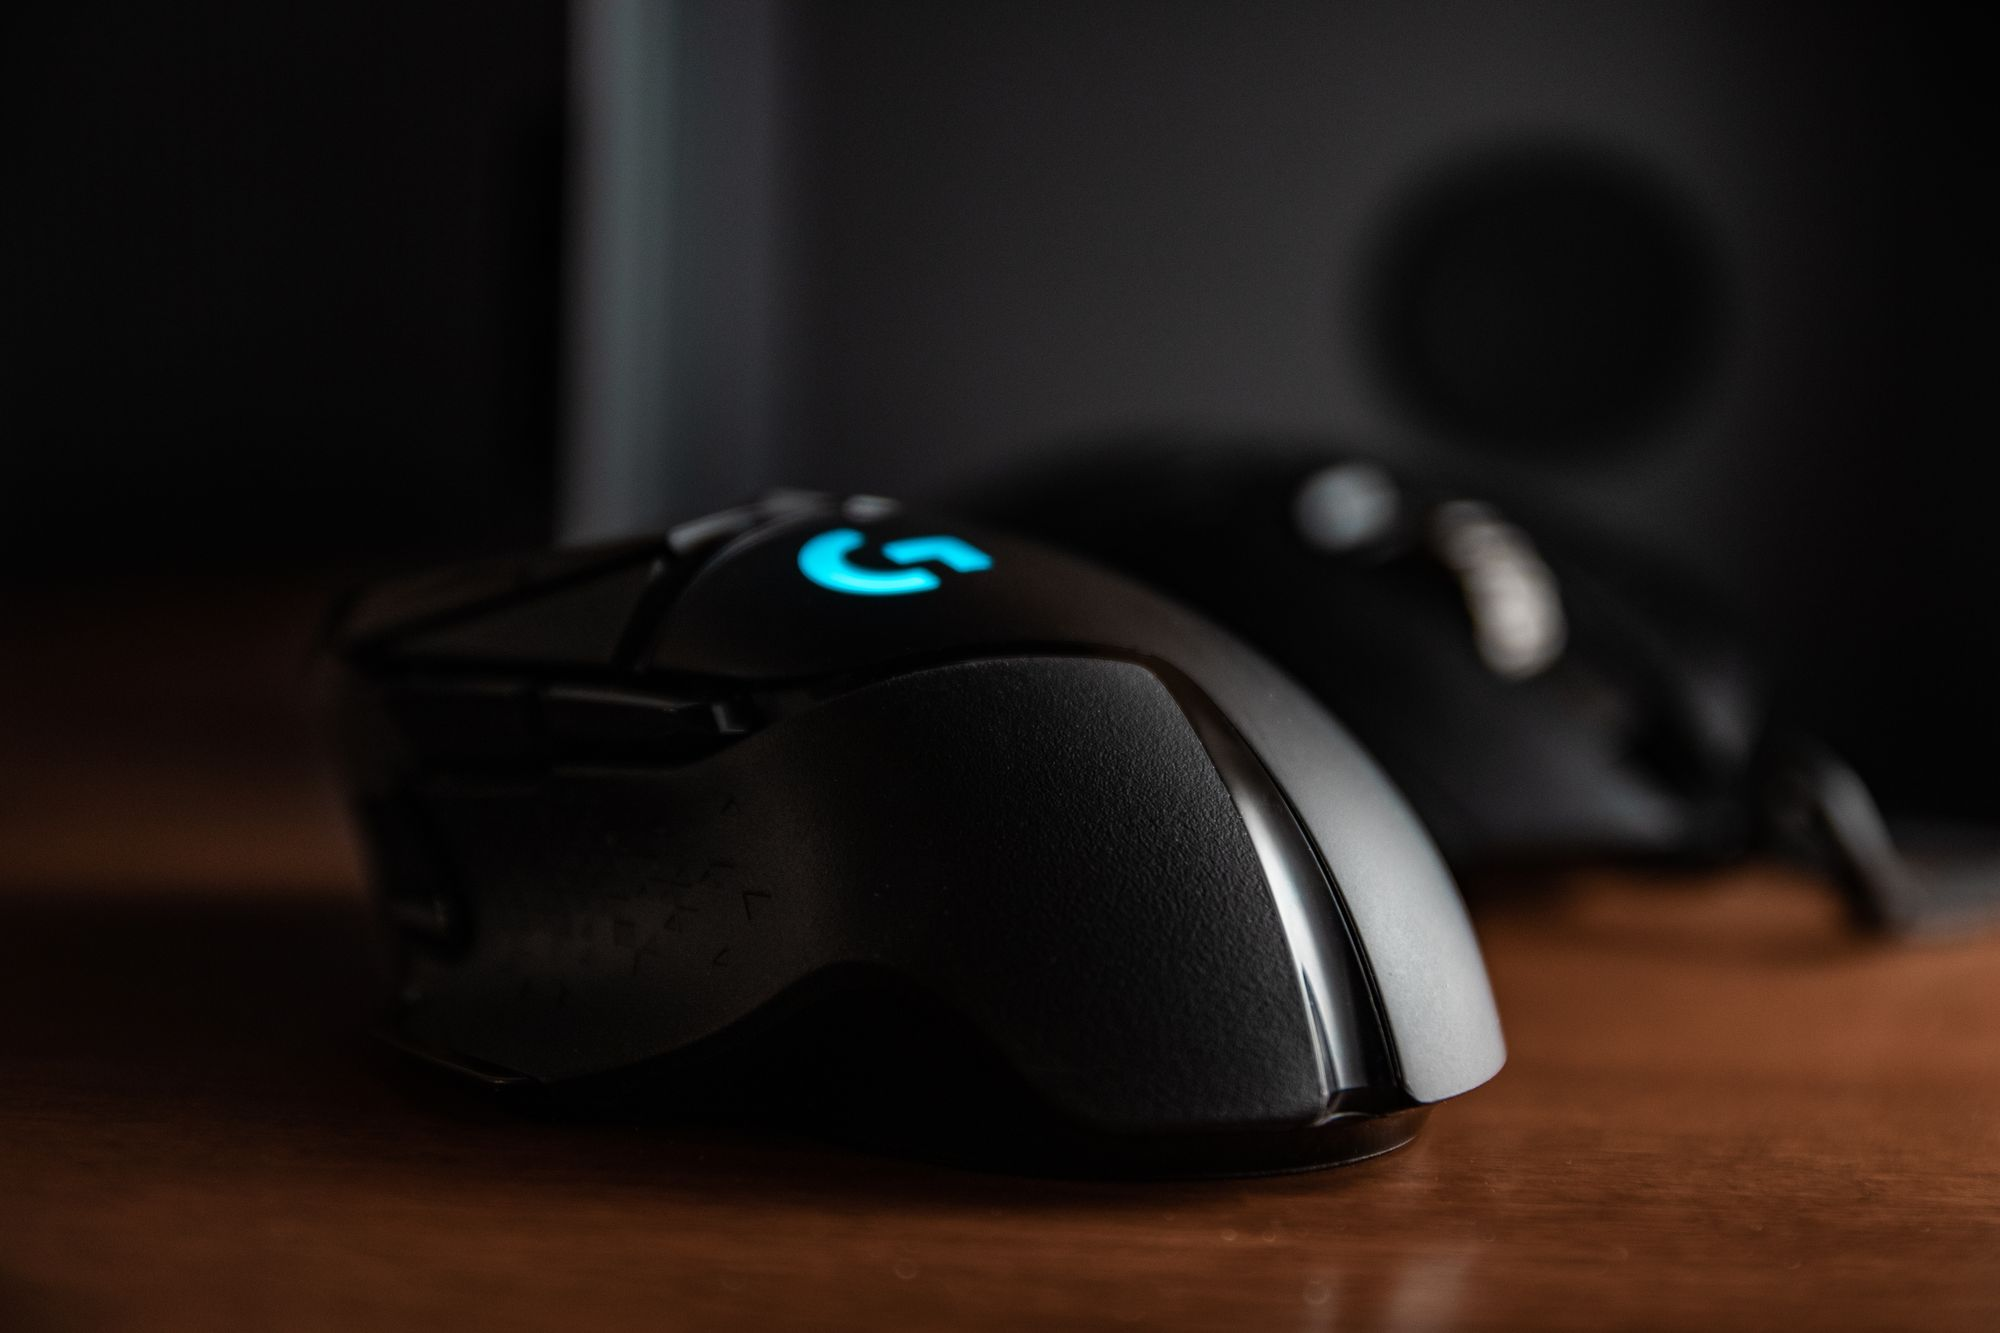 [Review] Logitech G502 Lightspeed Wireless Gaming Mouse